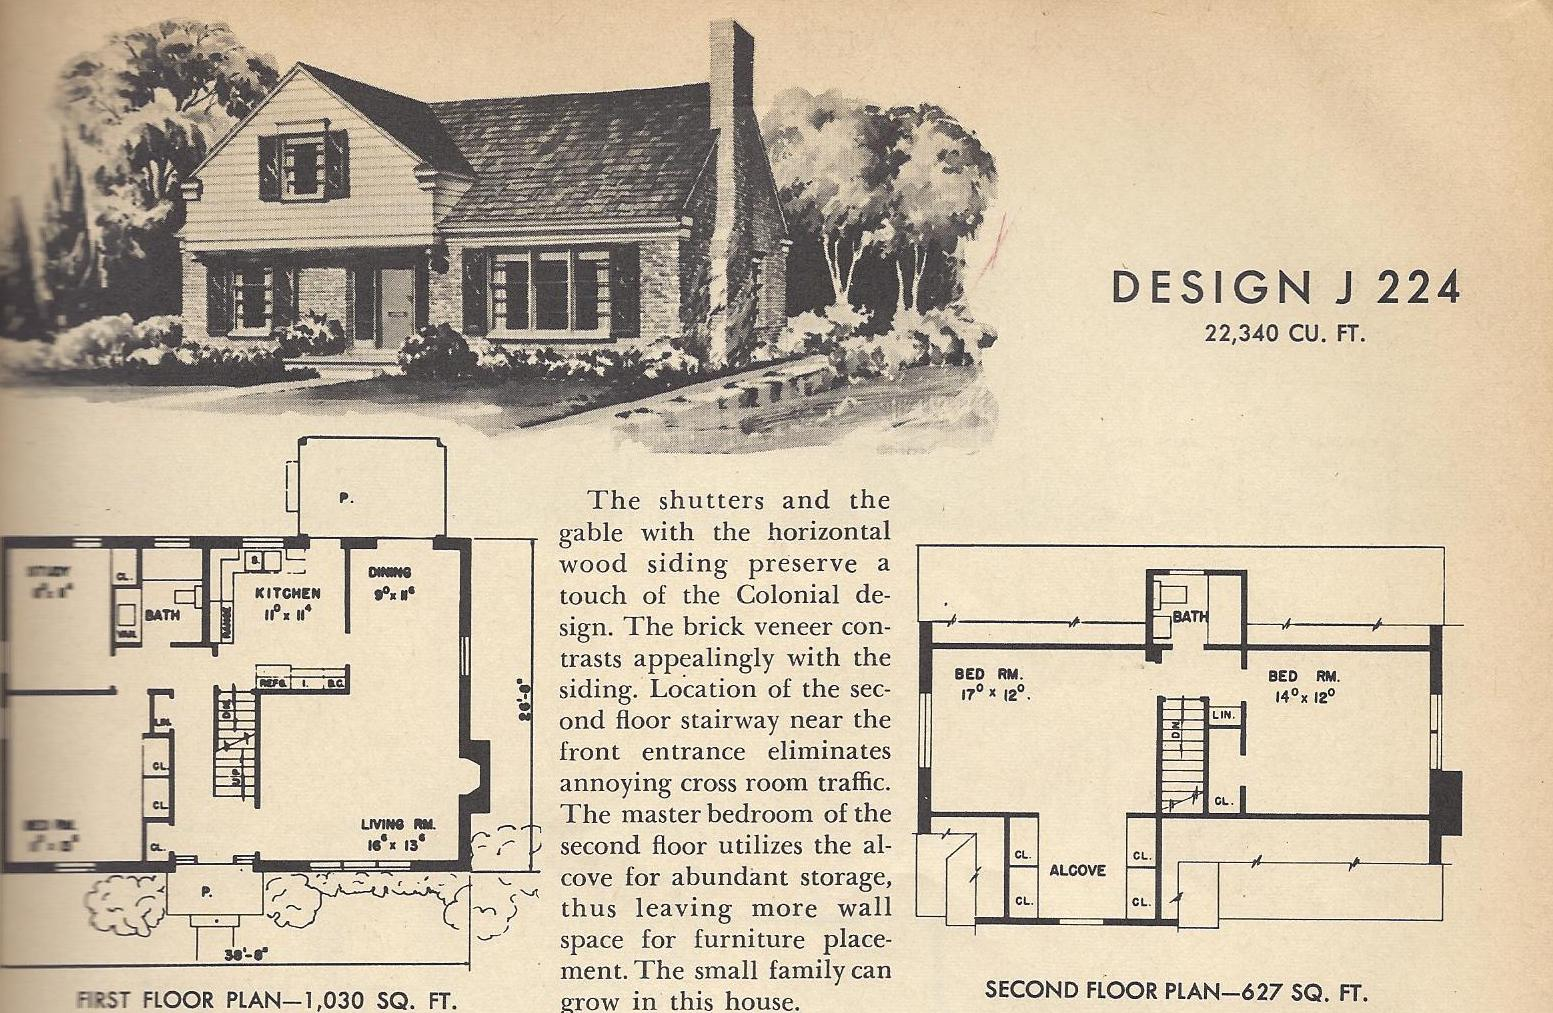 Vintage house plans j224 antique alter ego for Vintage home plans